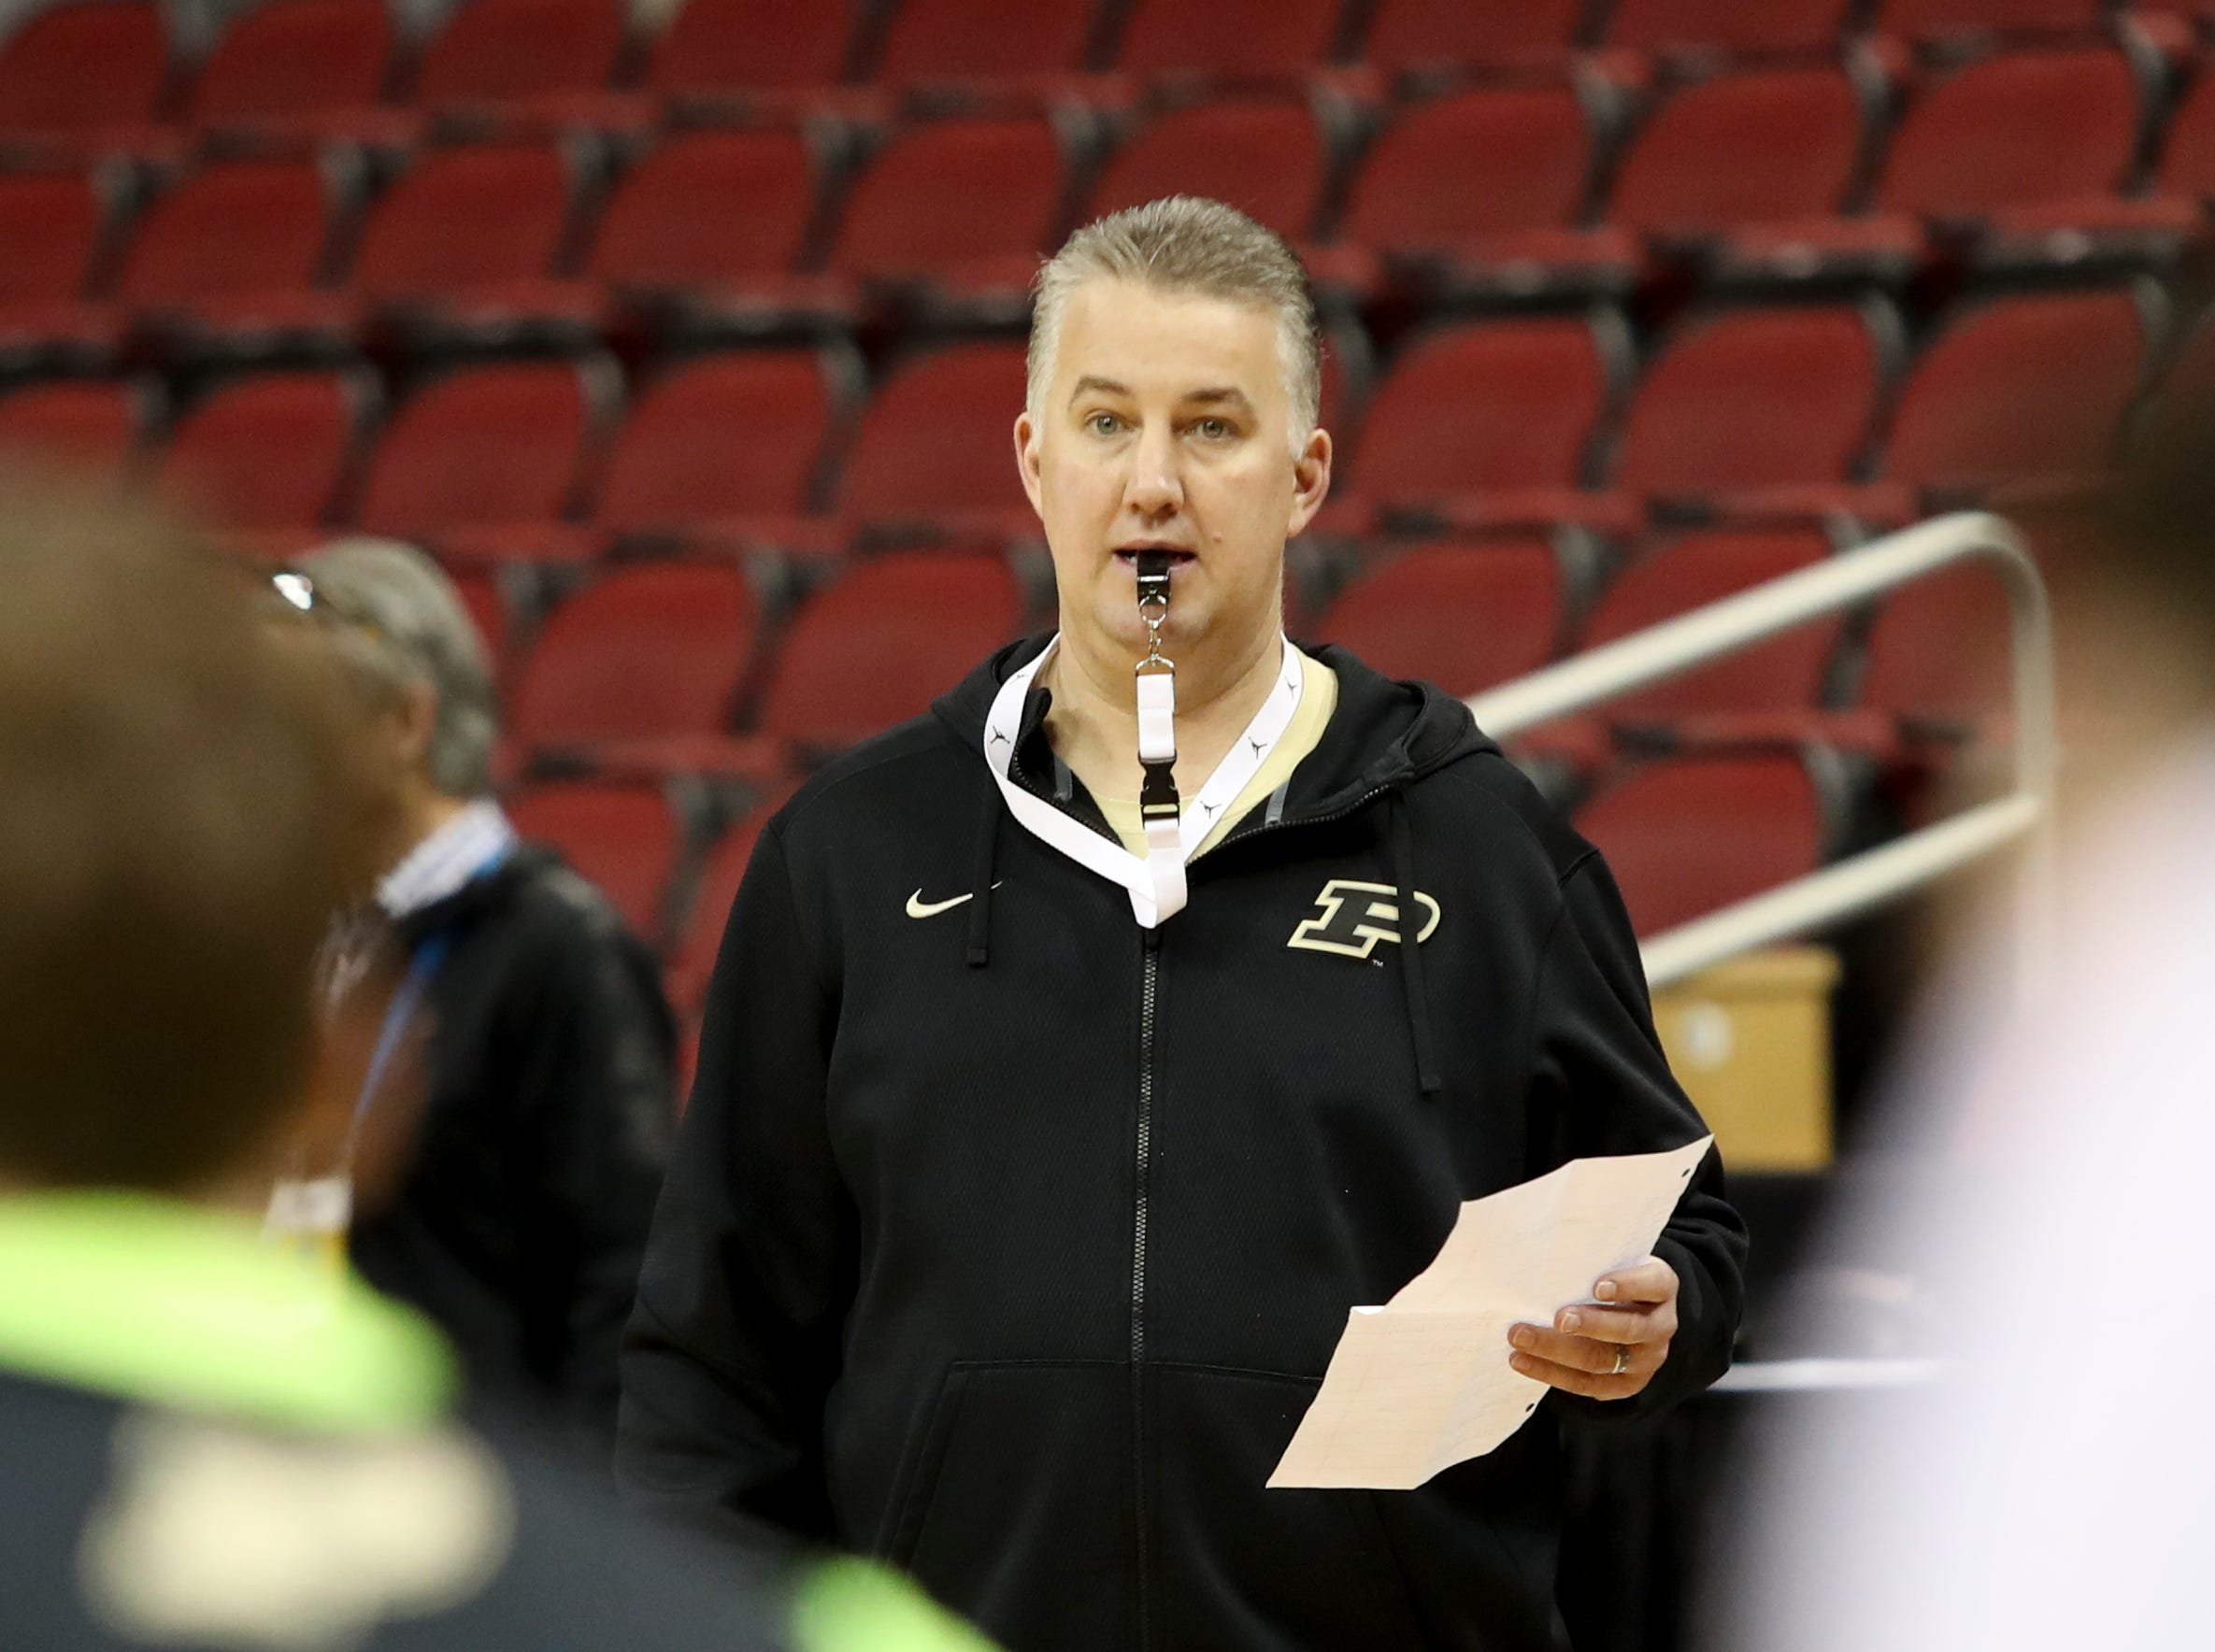 Purdue's coach Matt Painter leads practice on March 27 at the KFC Yum Center in Louisville, Ky.